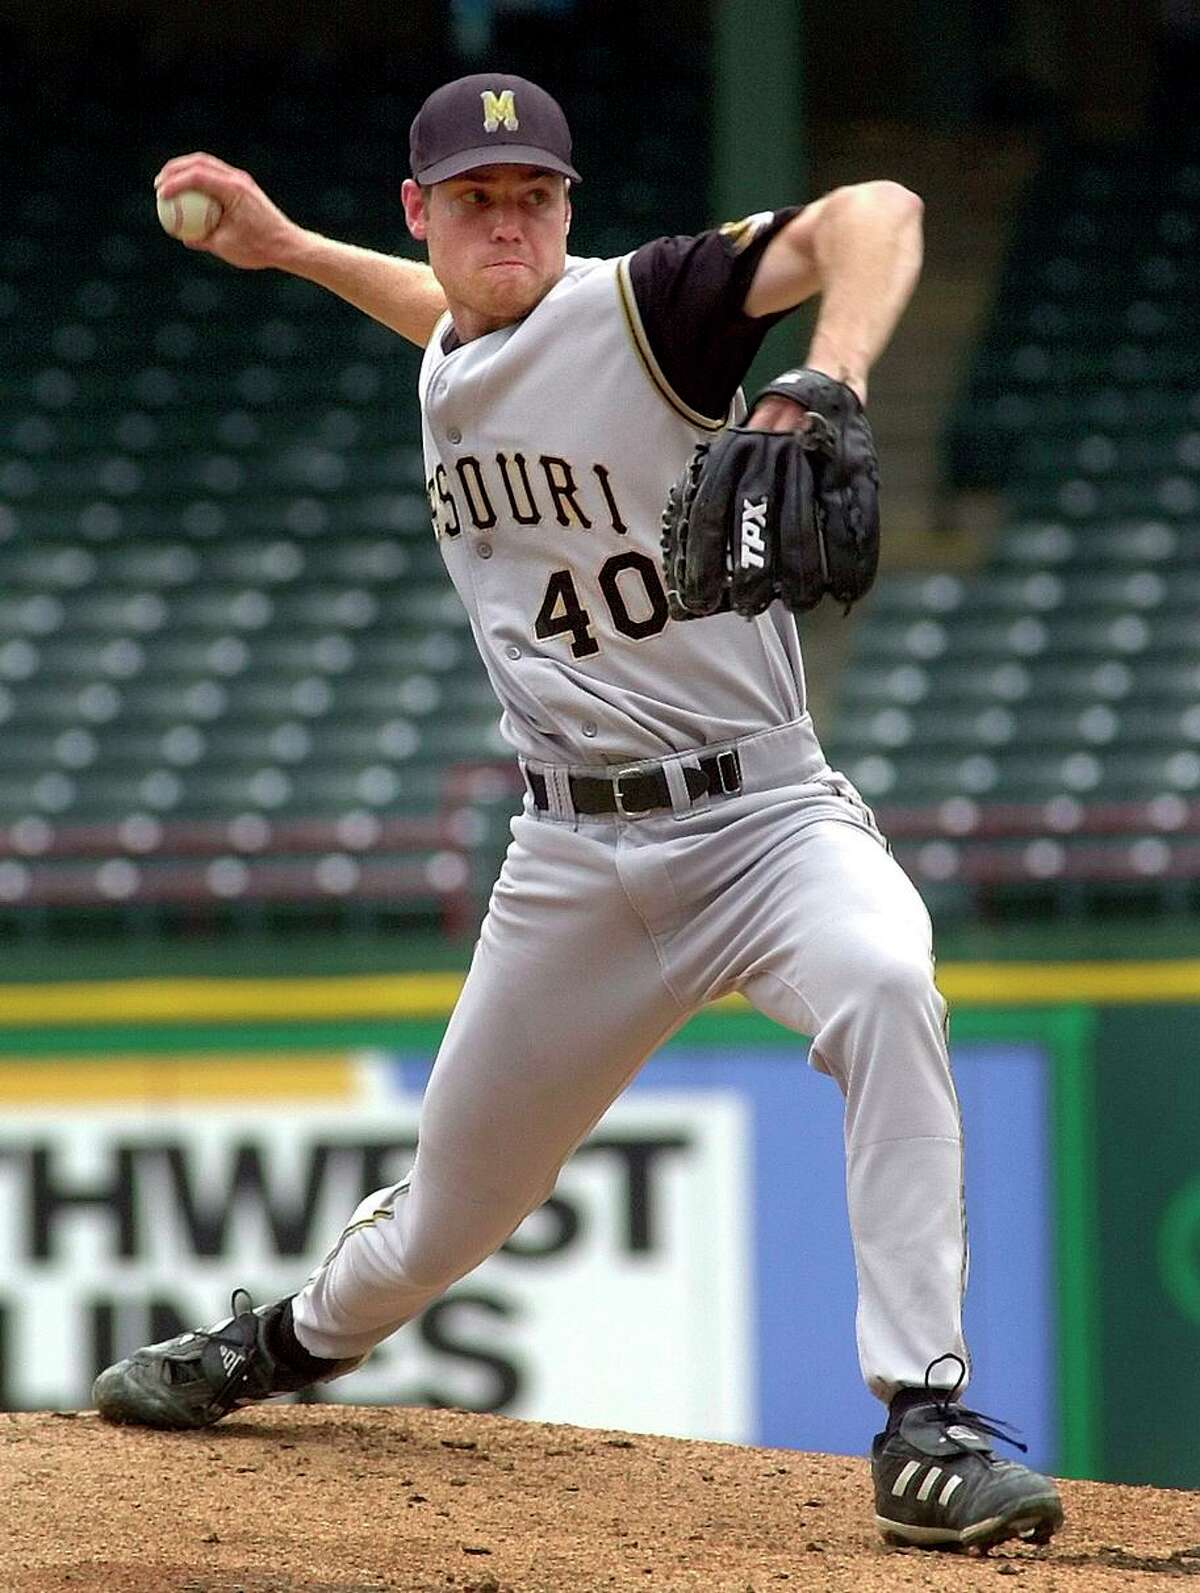 Garrett Broshuis pitched collegiately at Missouri before he got a $160,000 bonus as a fifth-round draft pick of the Giants.